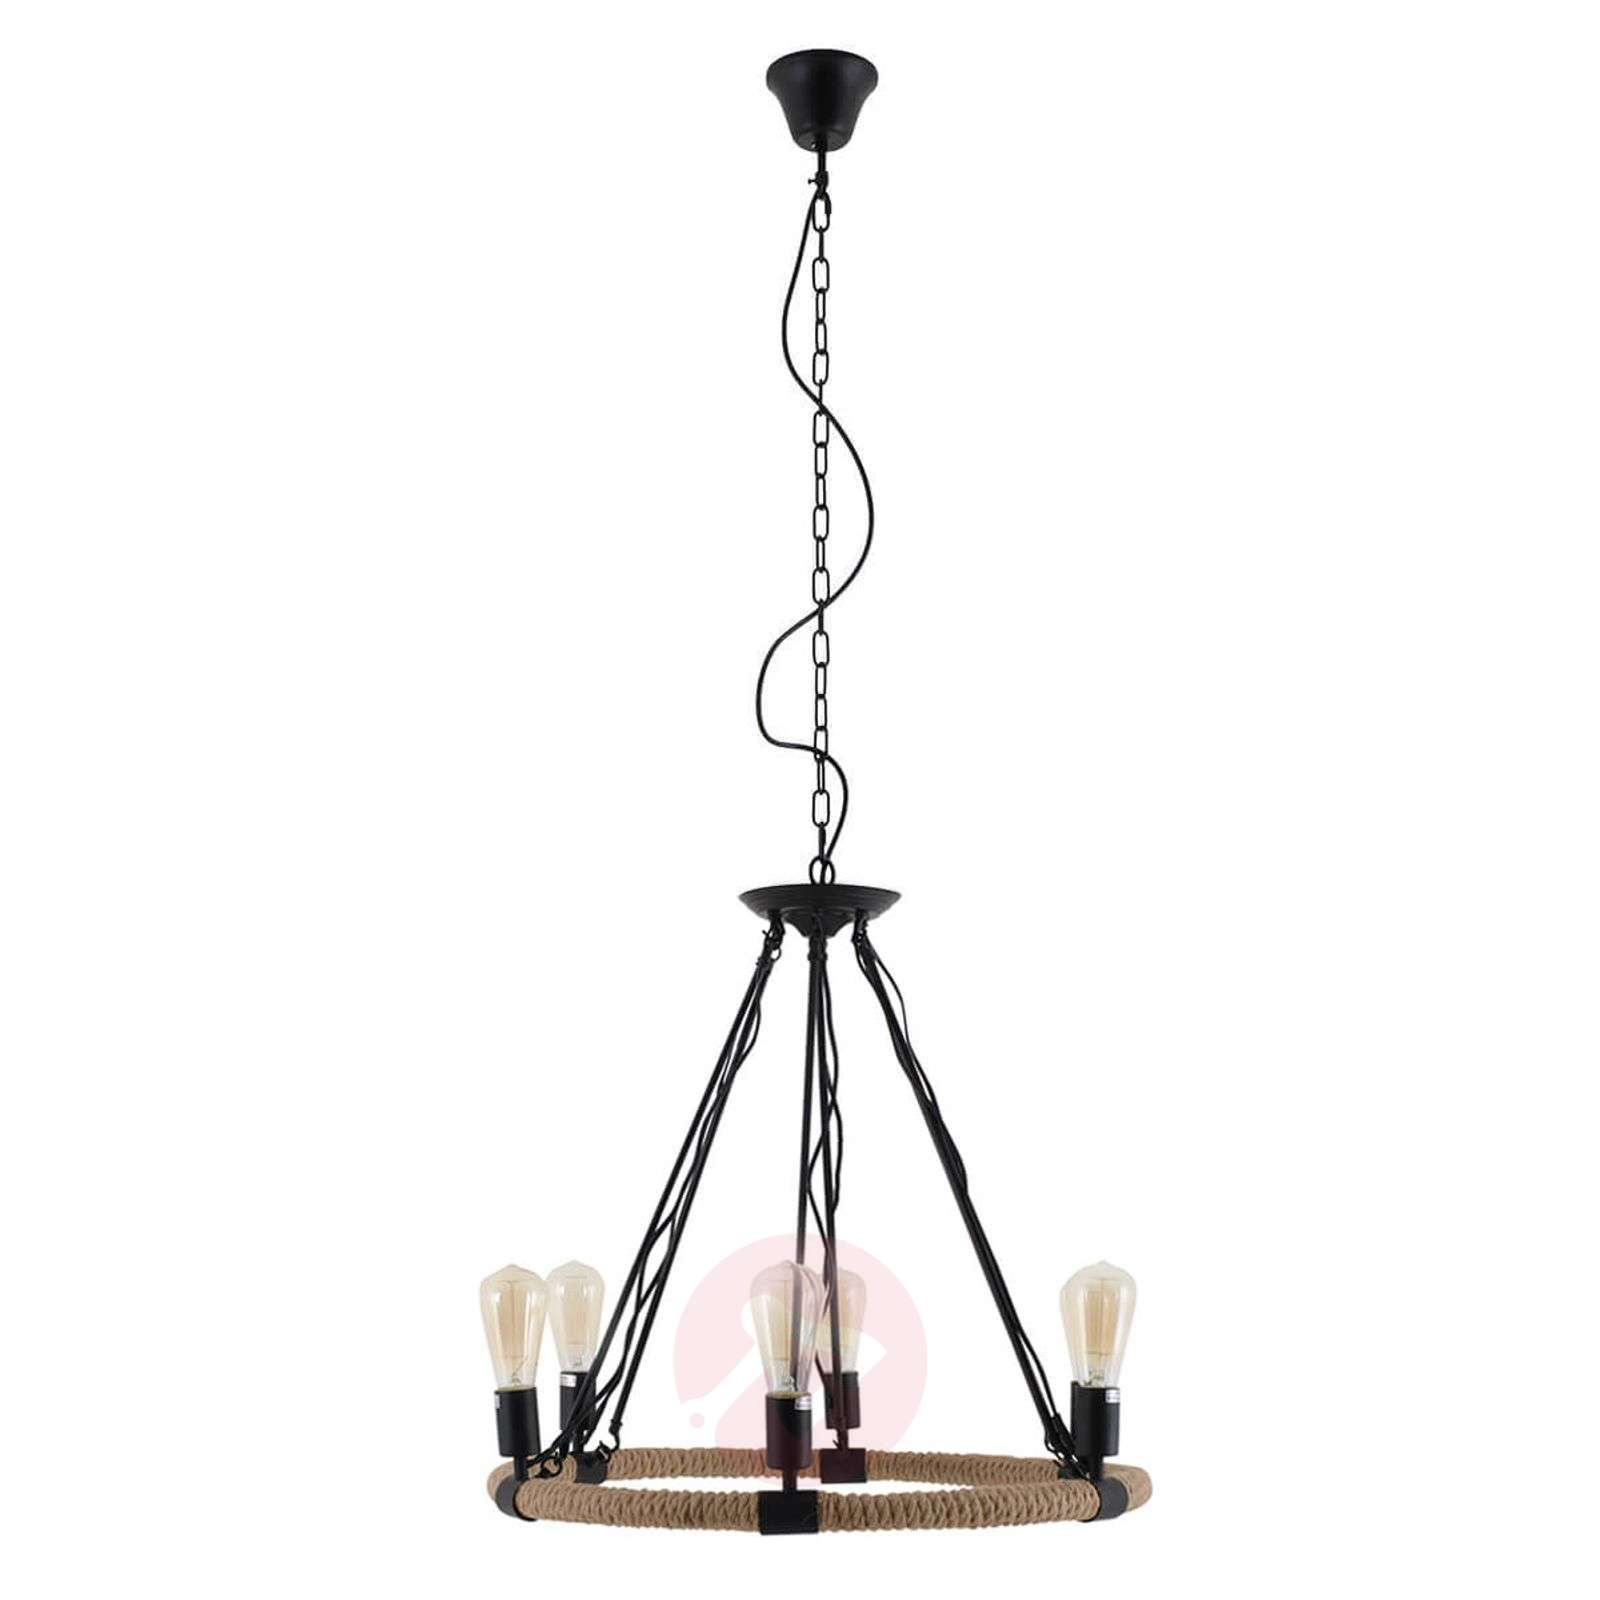 Ina suspension au design ancien-7000928-01